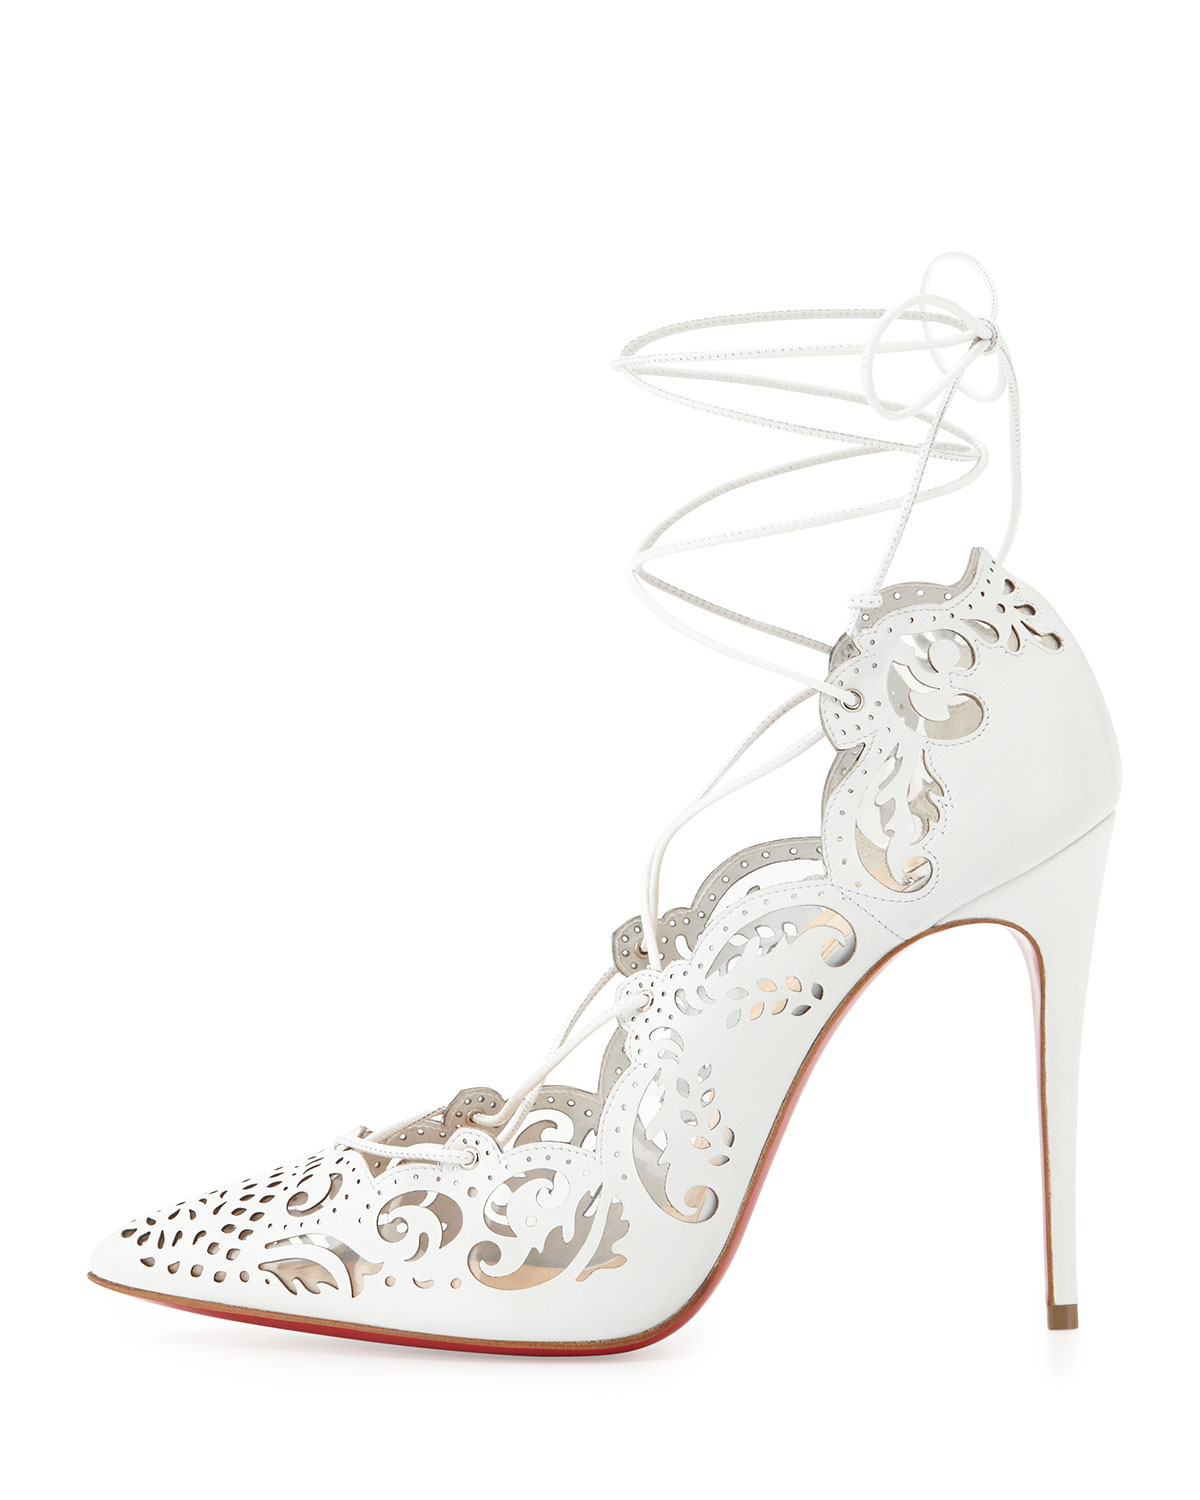 Christian louboutin Impera Laceup Red Sole Pump White in White | Lyst